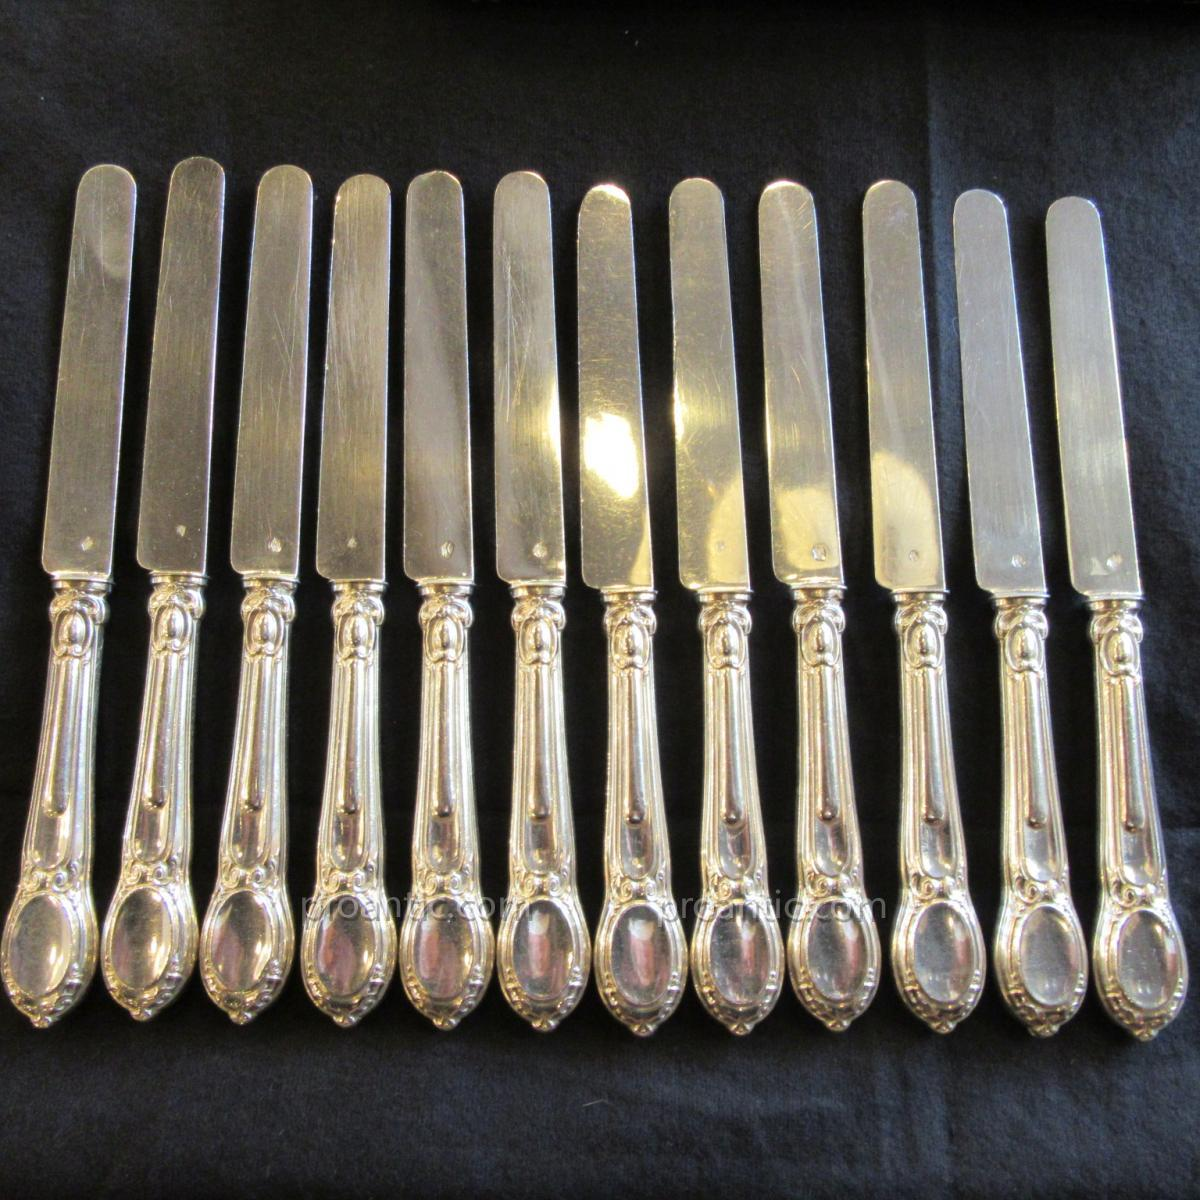 12 Silver Knives Minerva Orfevre F.babou Around 1885